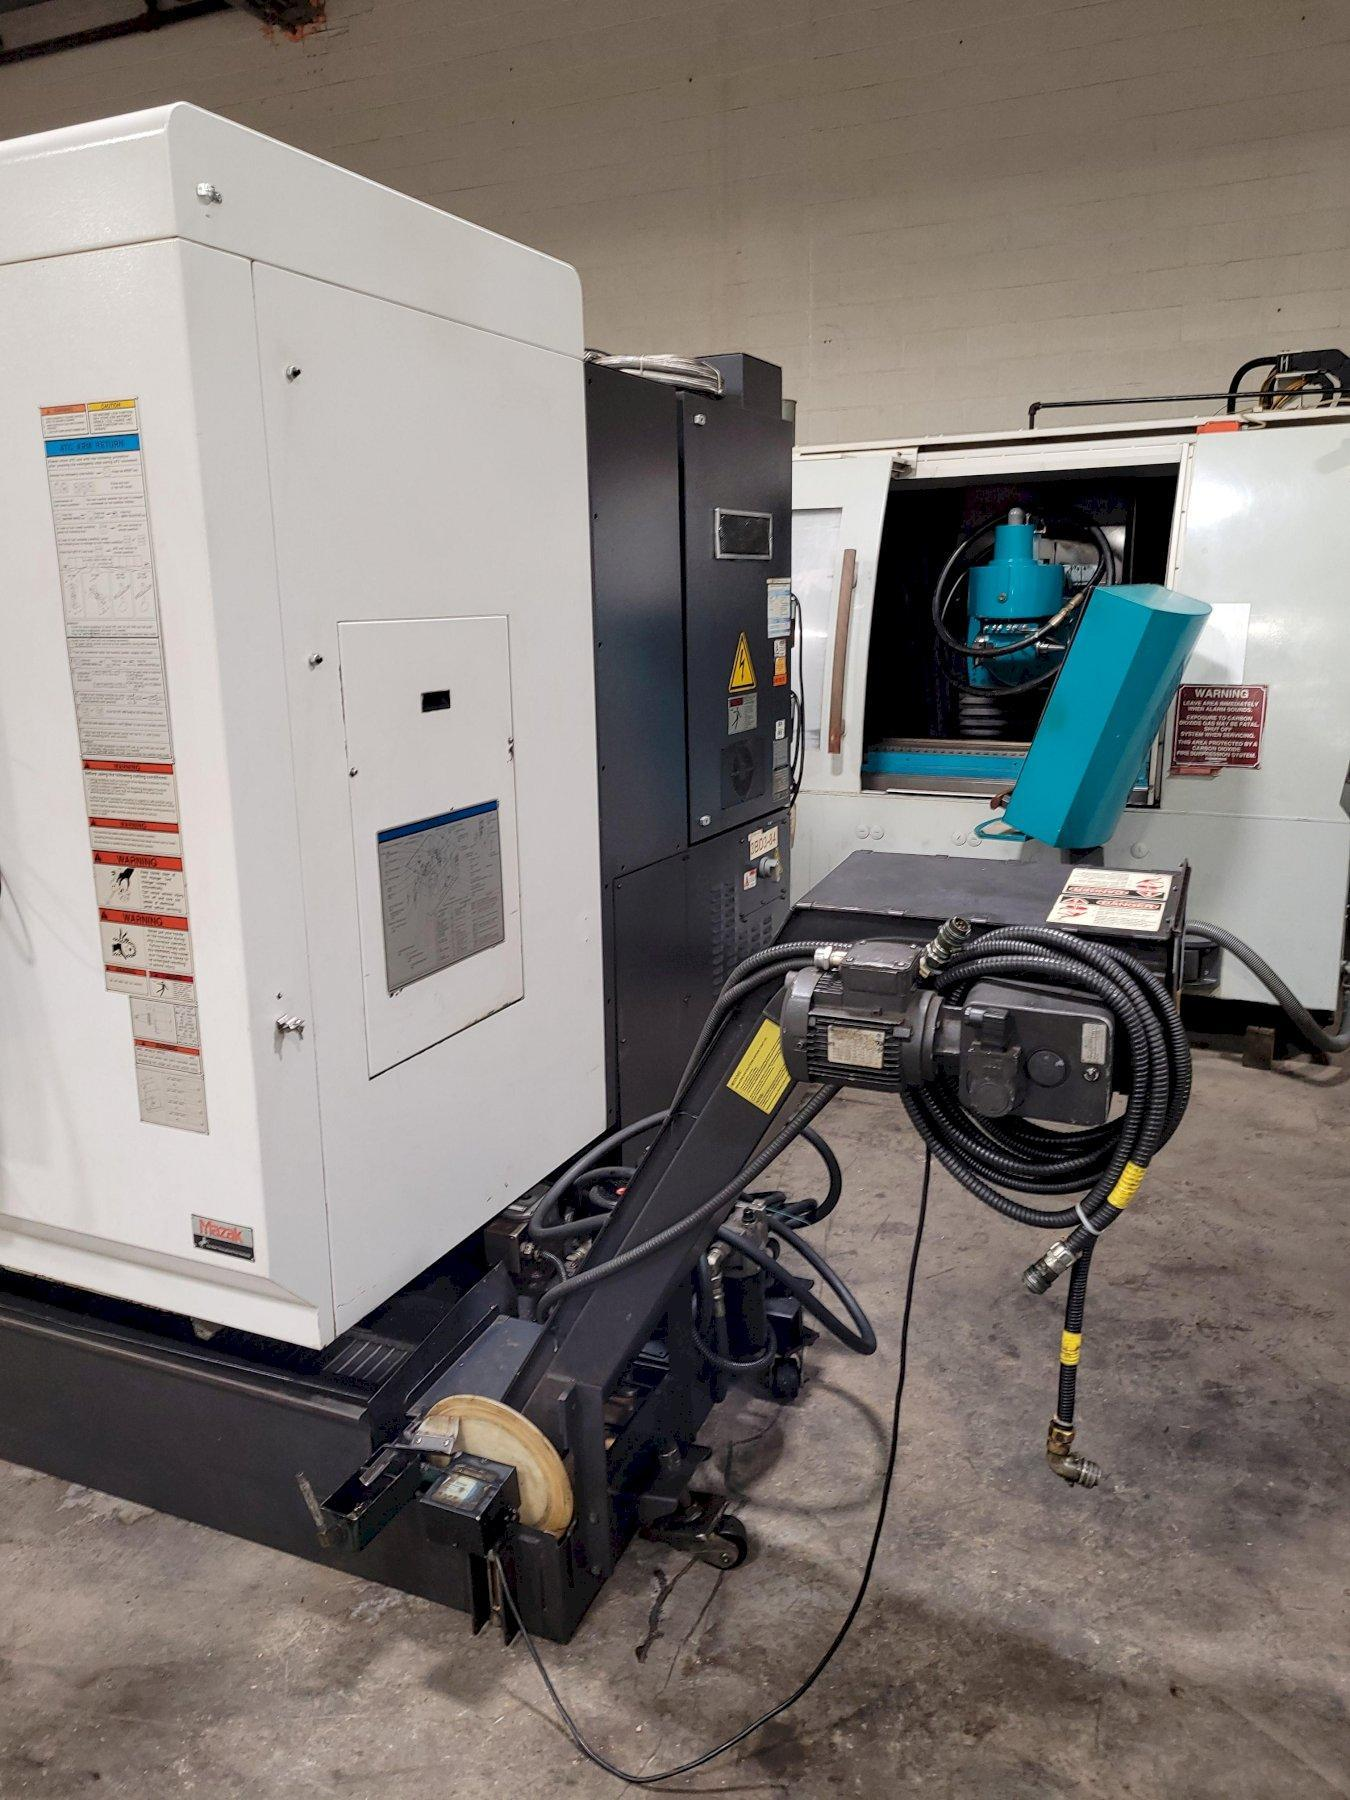 Mazak VTC-200C CNC Traveling Column Vertical Machining Center with 4th/5th Axis